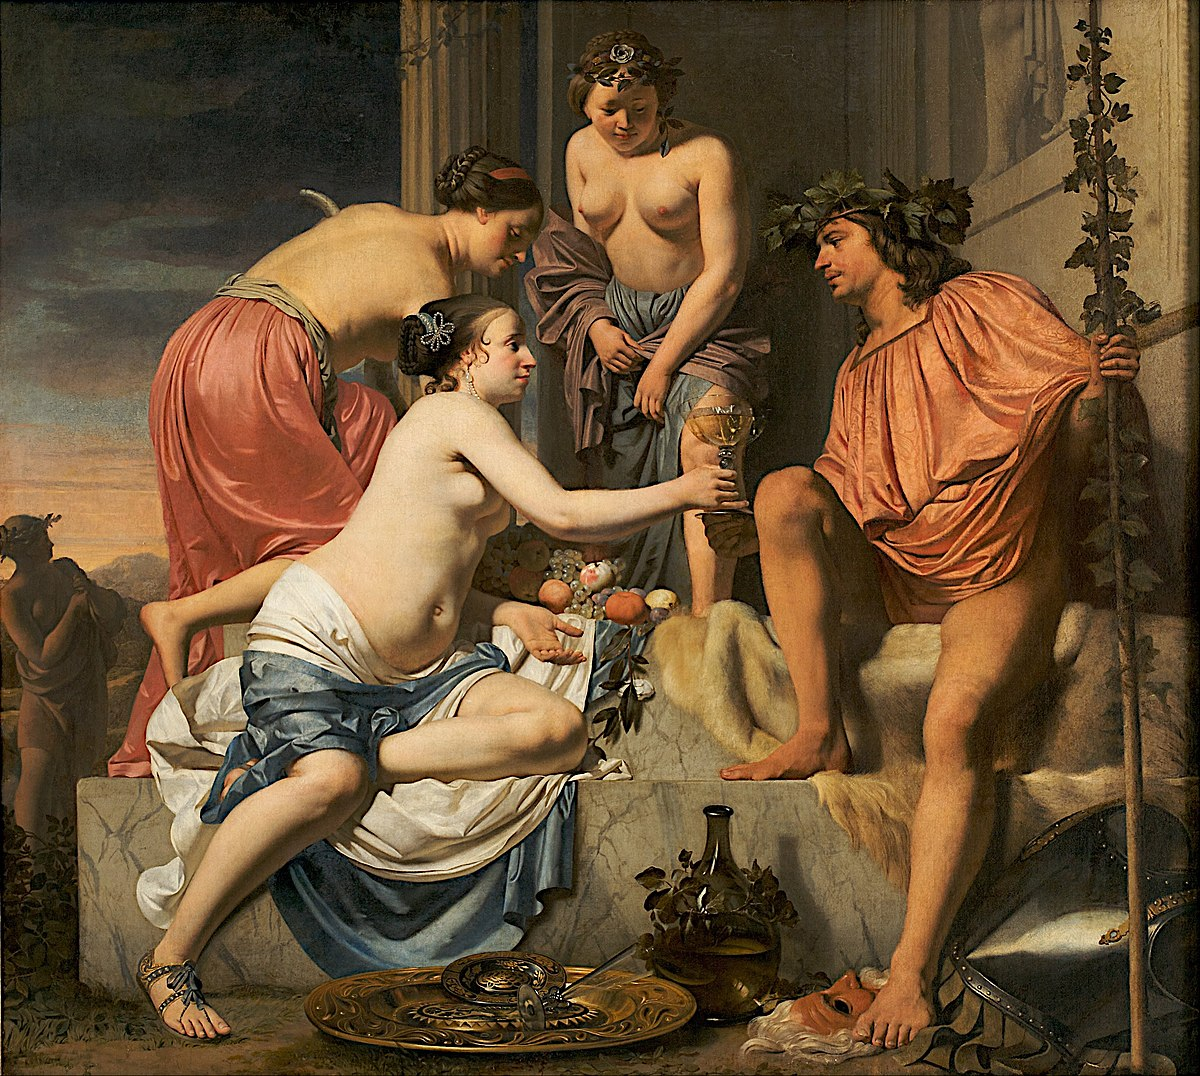 http://upload.wikimedia.org/wikipedia/commons/thumb/c/cc/Caesar_Boetius_van_Everdingen_-_Bacchus_on_a_Throne_%E2%88%92_Nymphs_Offering_Bacchus_Wine_and_Fruit_-_Google_Art_Project.jpg/1200px-Caesar_Boetius_van_Everdingen_-_Bacchus_on_a_Throne_%E2%88%92_Nymphs_Offering_Bacchus_Wine_and_Fruit_-_Google_Art_Project.jpg